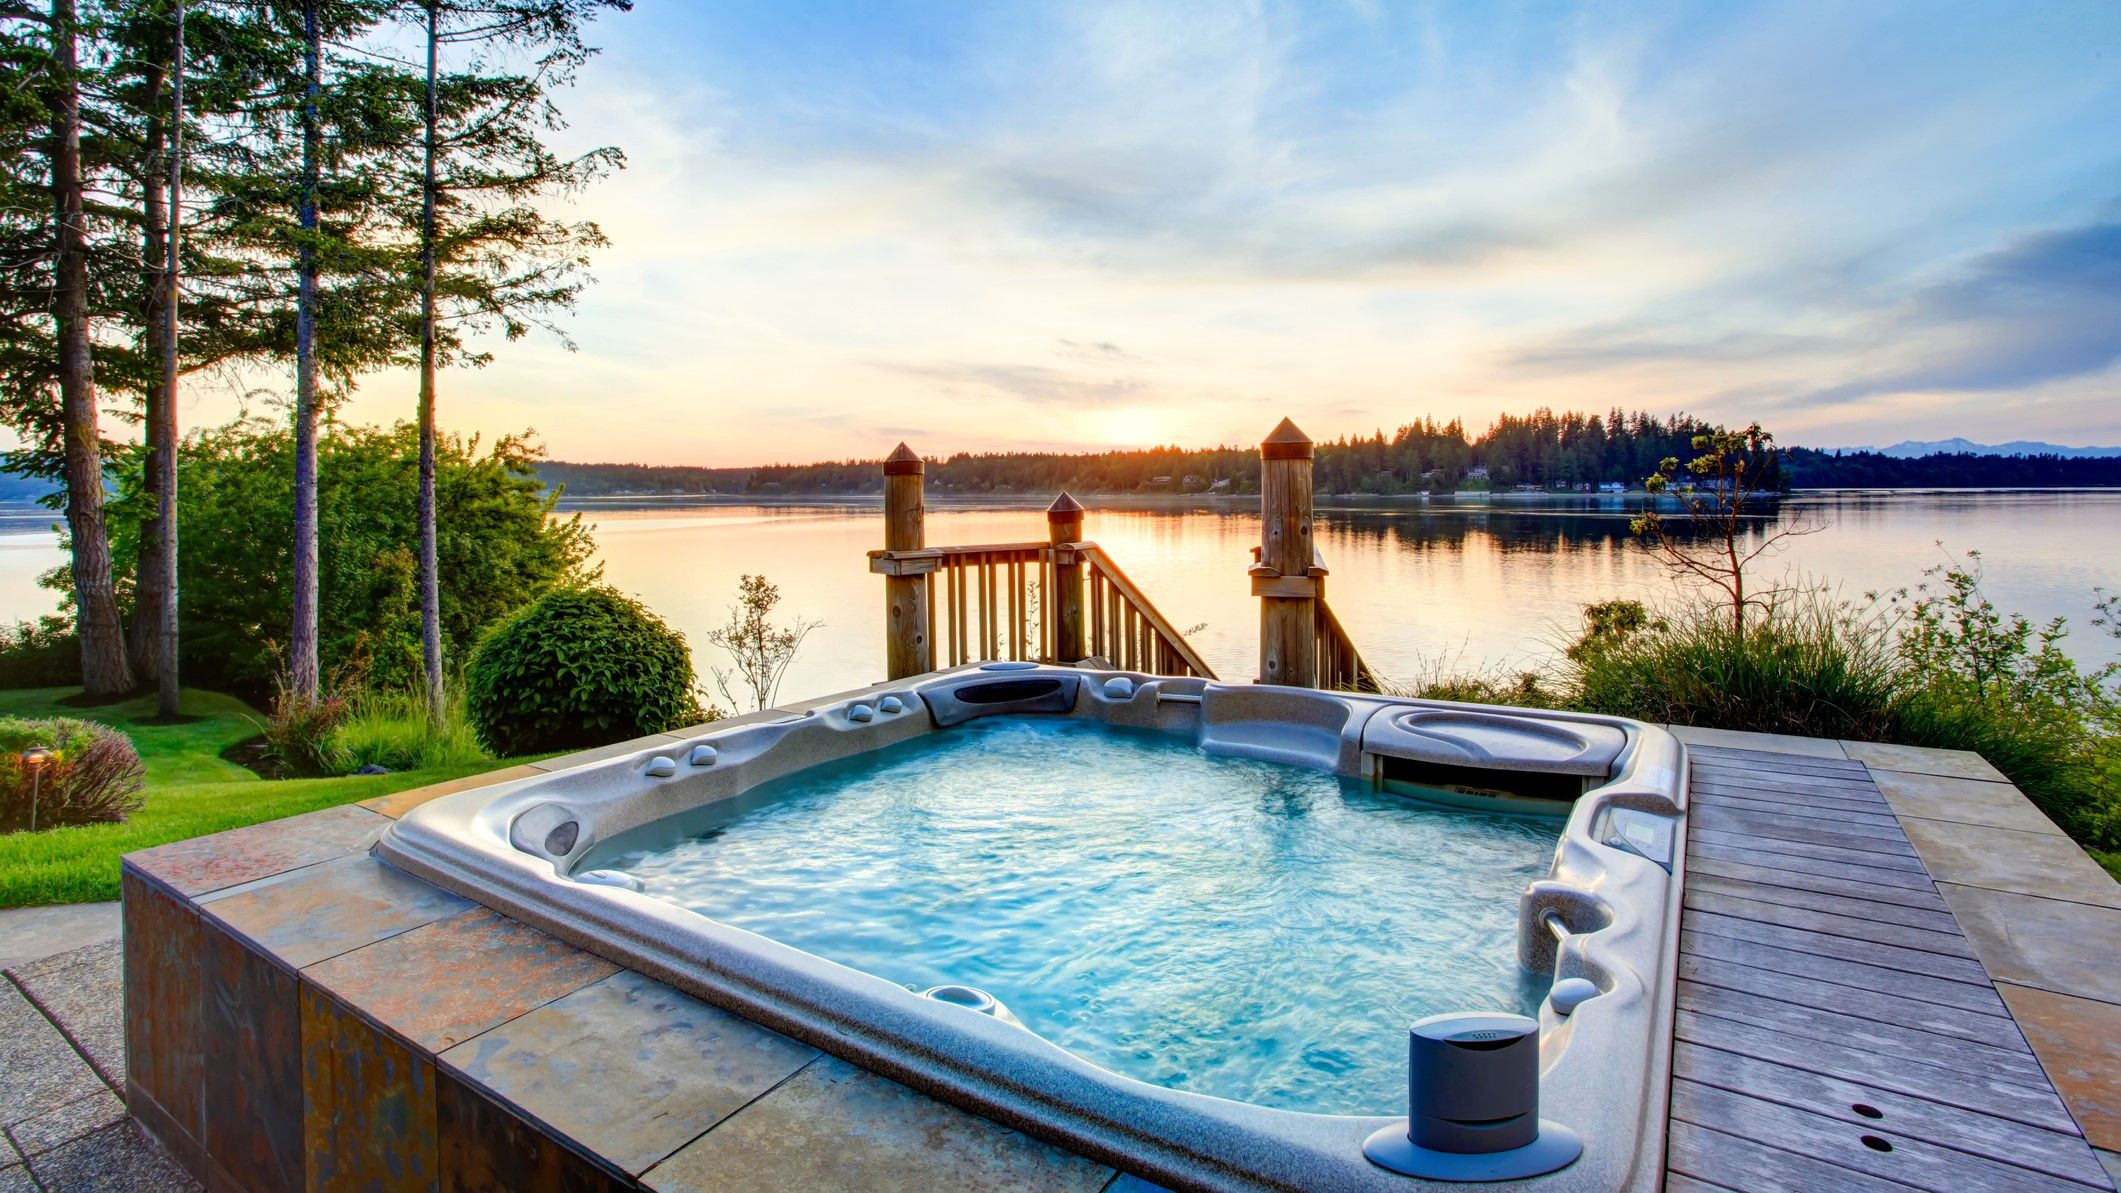 Best Hot Tubs 2020 Top Rated Jacuzzis For The Perfect At Home Spa Experience In 2020 Cabin Hot Tub Lodges With Hot Tubs Hot Tub Holidays